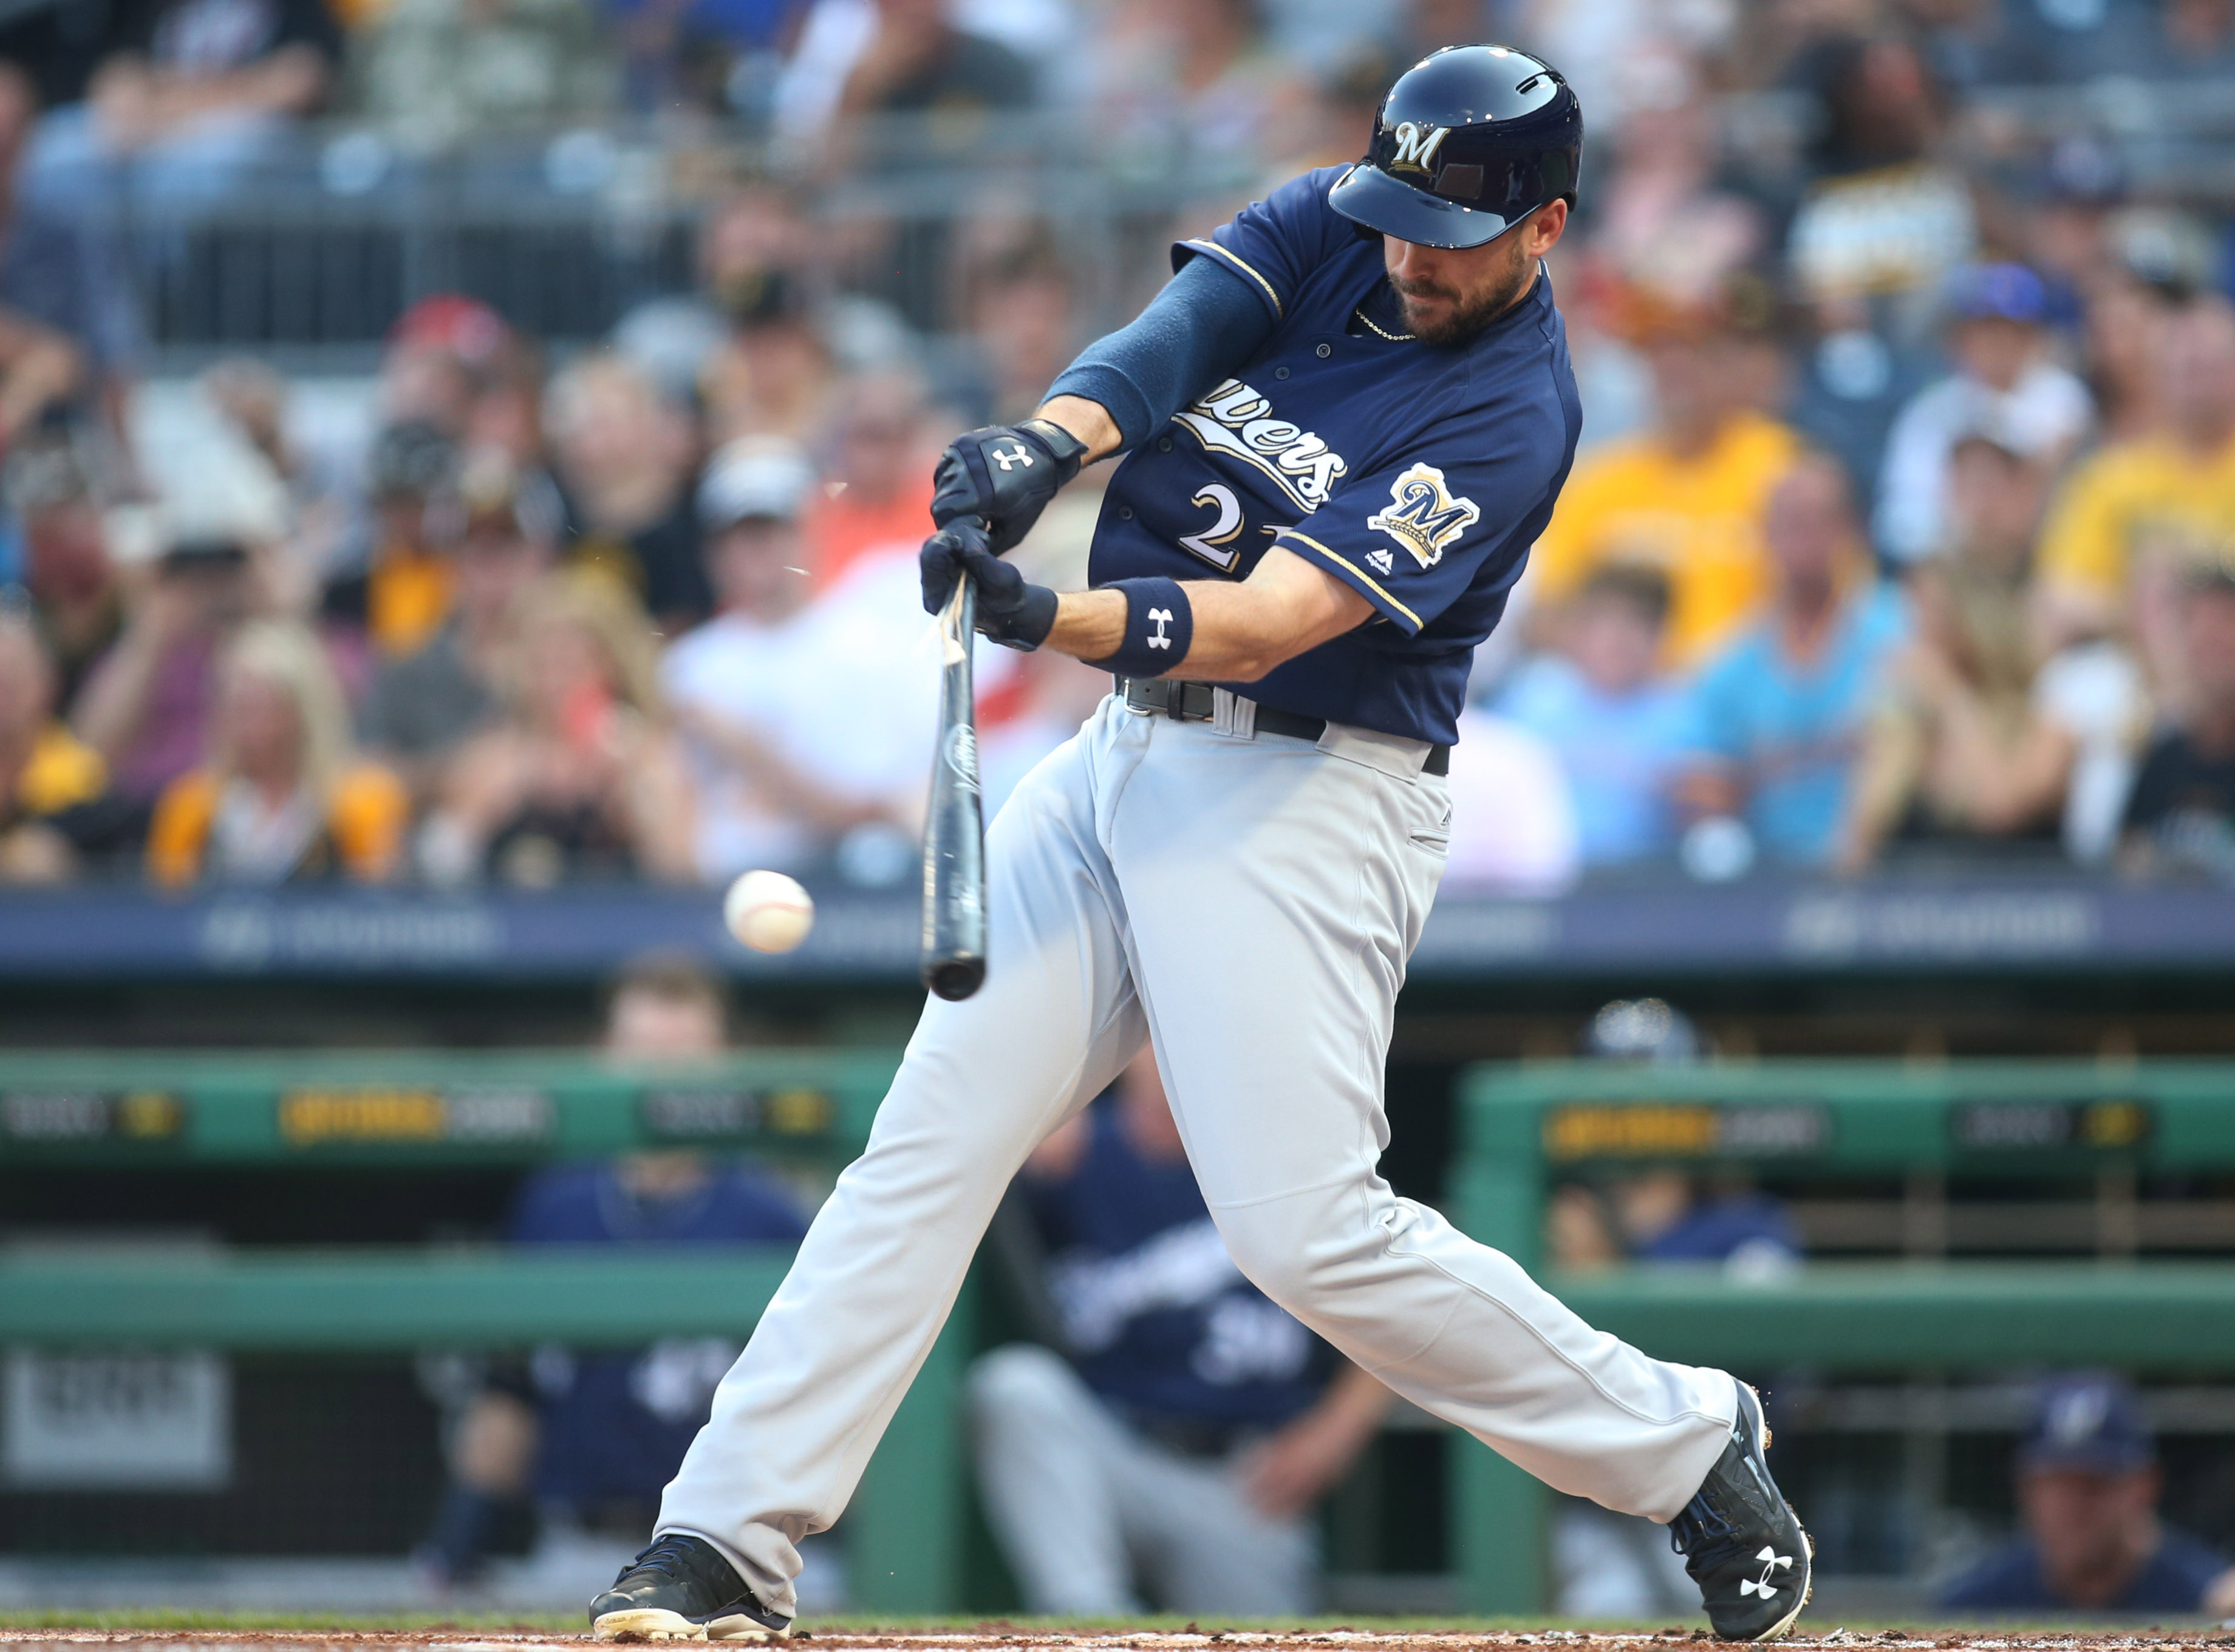 Jul 19, 2017; Pittsburgh, PA, USA;  Milwaukee Brewers third baseman Travis Shaw (21) singles against the Pittsburgh Pirates during the first inning at PNC Park. Mandatory Credit: Charles LeClaire-USA TODAY Sports